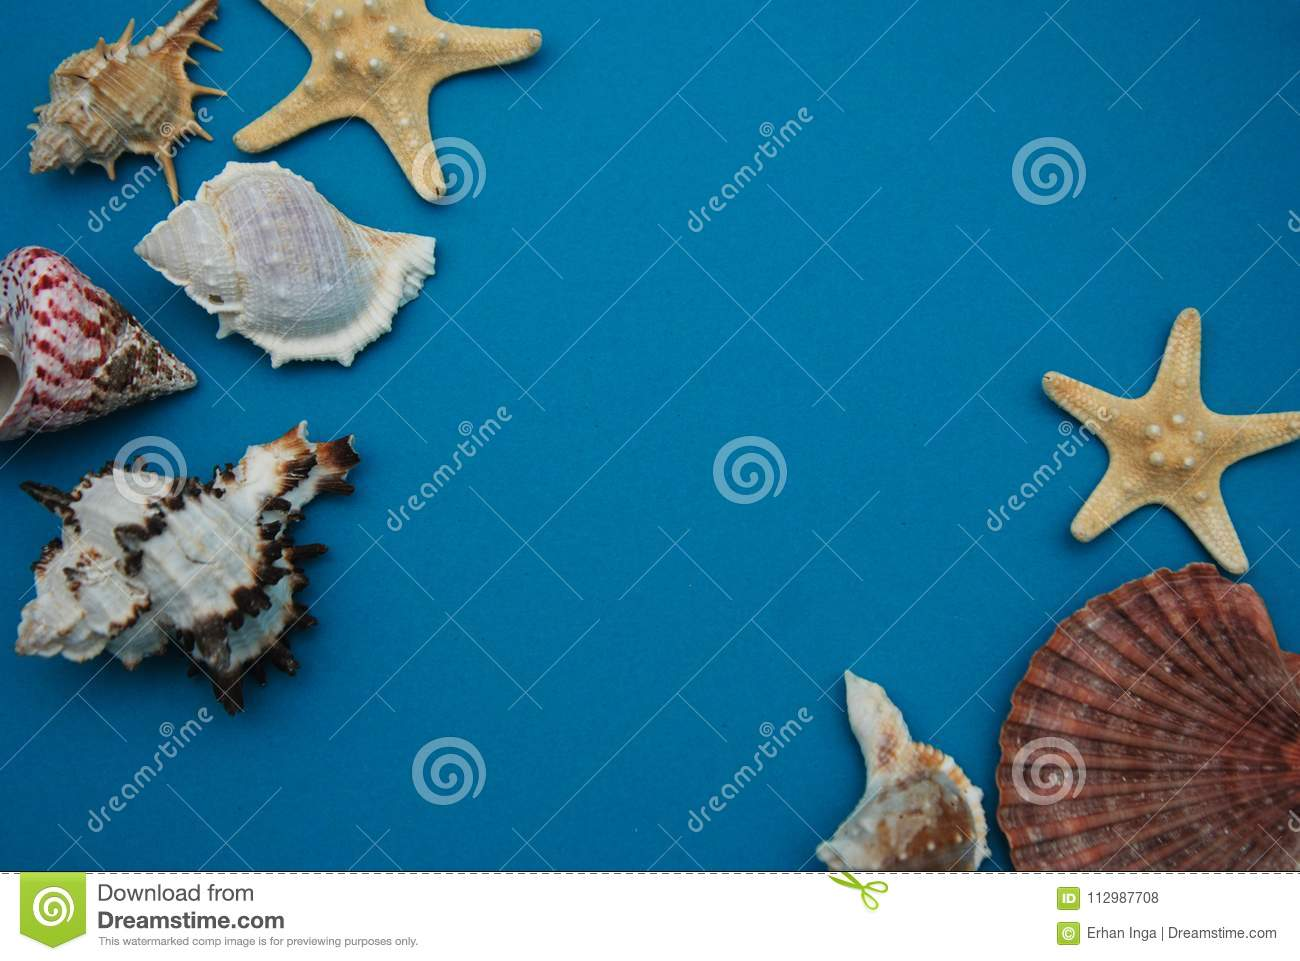 Starfish, Shell, Stones, Rope and Net Against a Blue Background with Copy Space. Summer Holliday. Nautical, Marrine concept.